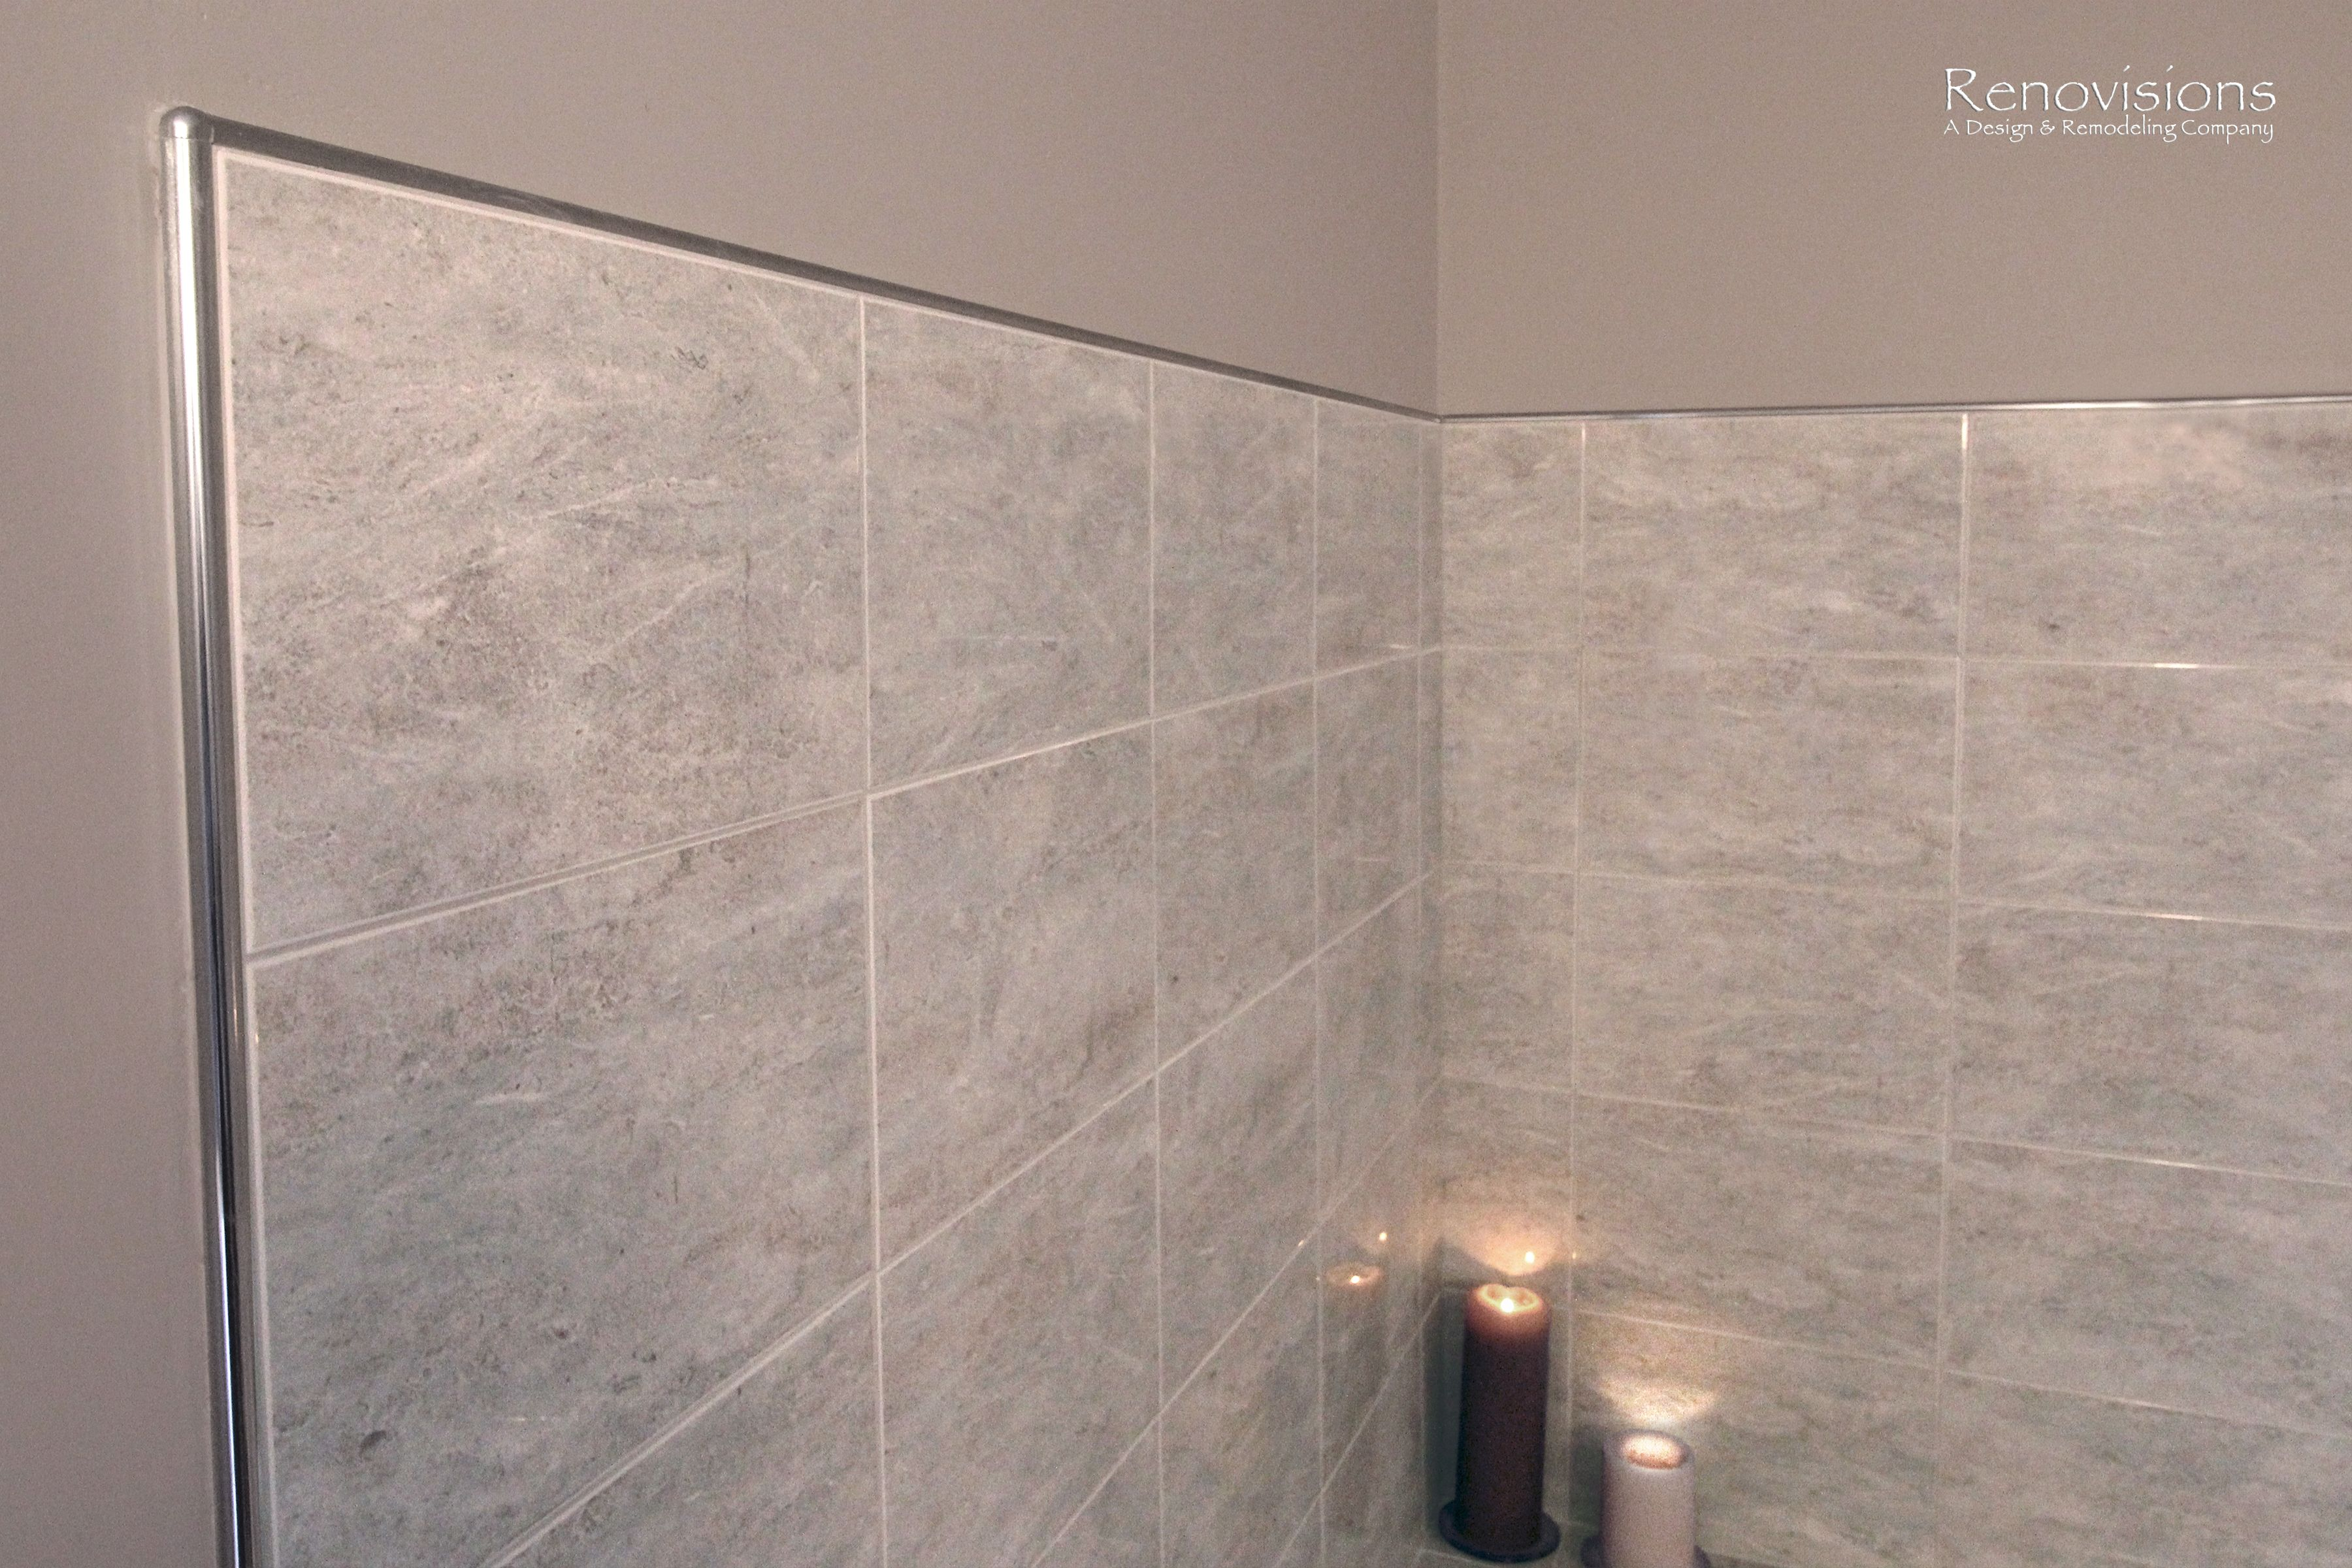 Bathroom remodel by Renovisions. Contemporary style ...